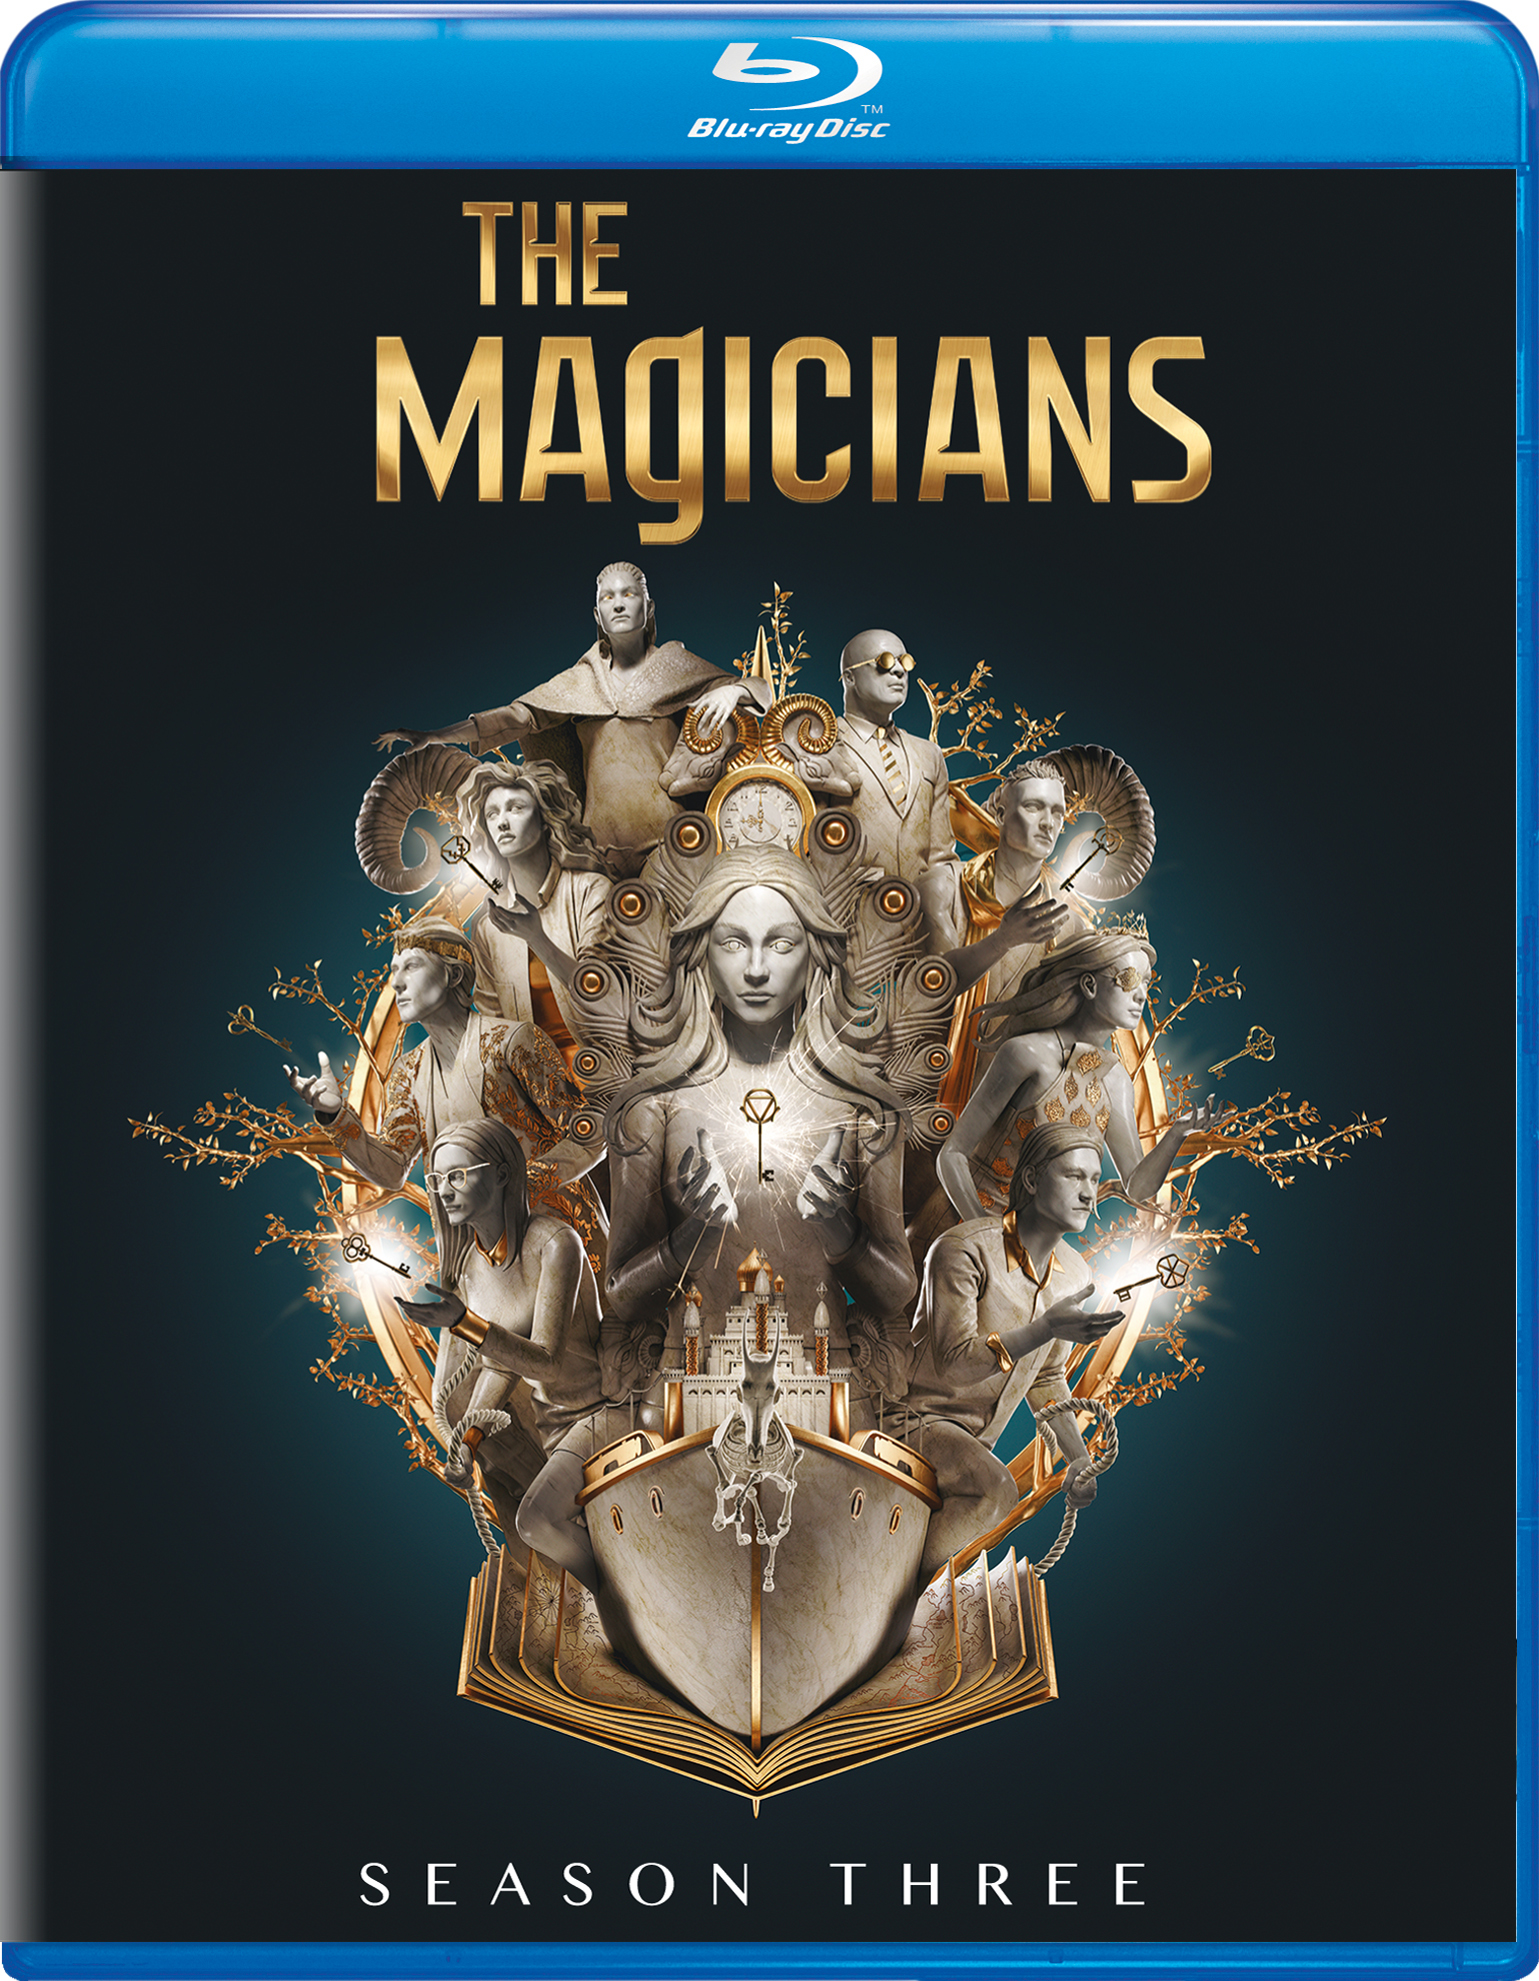 The Magicians: Season Three (TV) (2018) Blu-ray